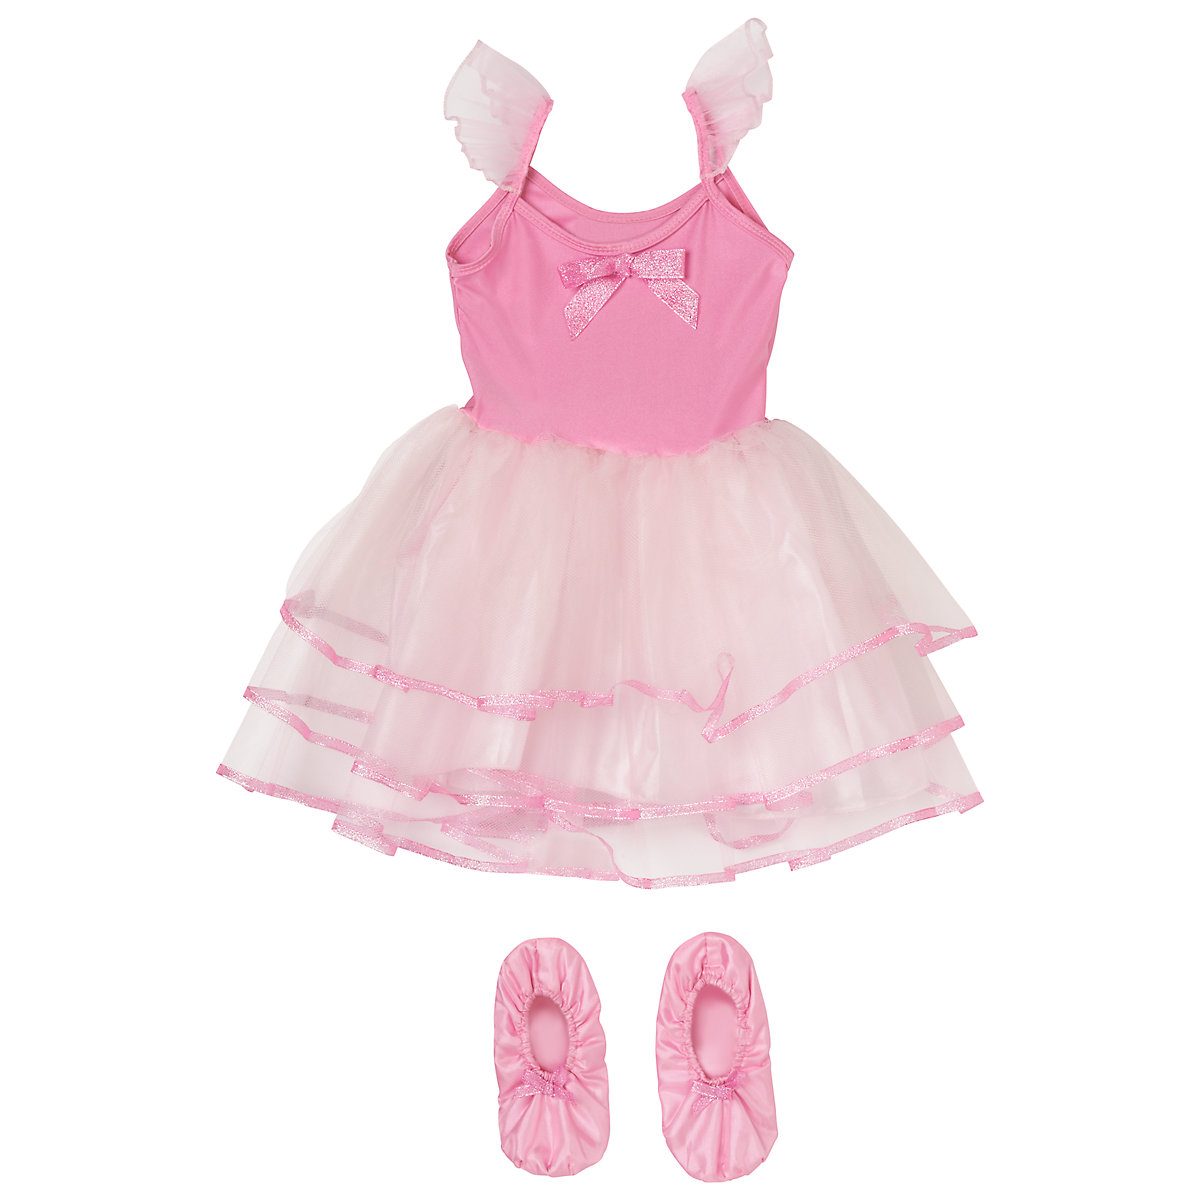 New ELC Girl Magical Mimi Ballet Dress with Shoes Toy From 3 years - Ballet Gifts